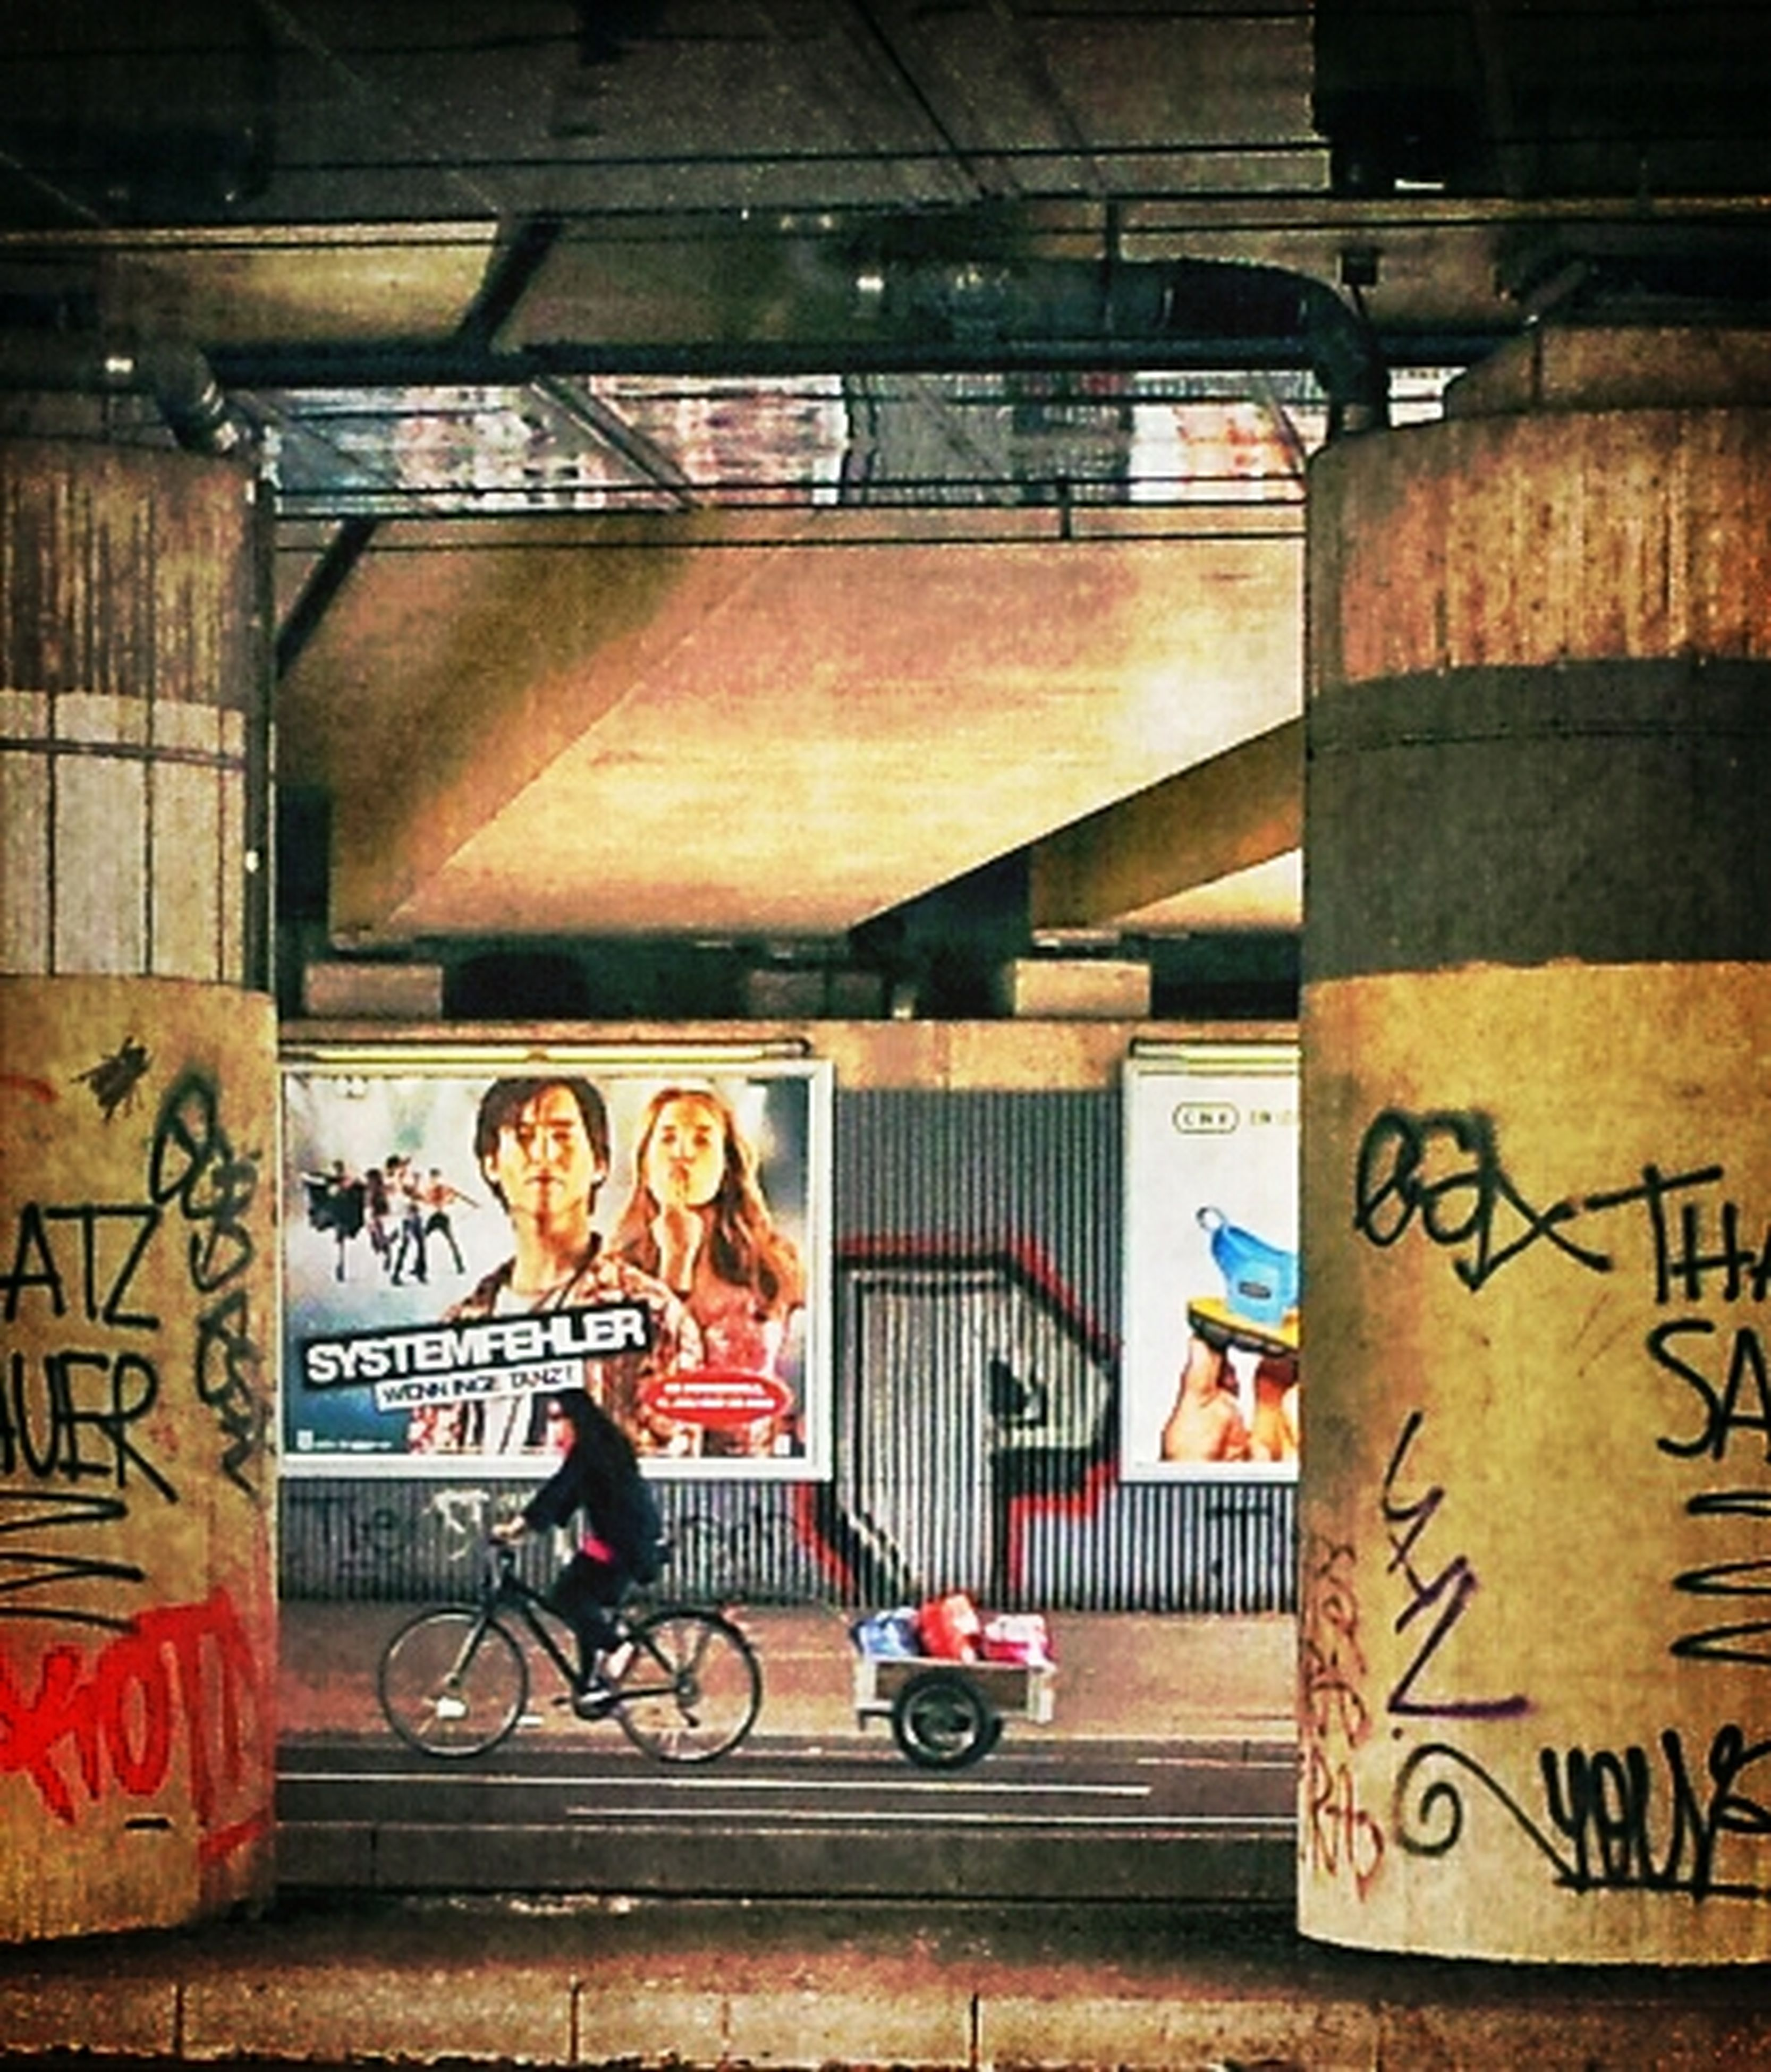 graffiti, art, art and craft, architecture, creativity, built structure, text, human representation, wall - building feature, building exterior, western script, communication, indoors, non-western script, street art, building, wall, no people, day